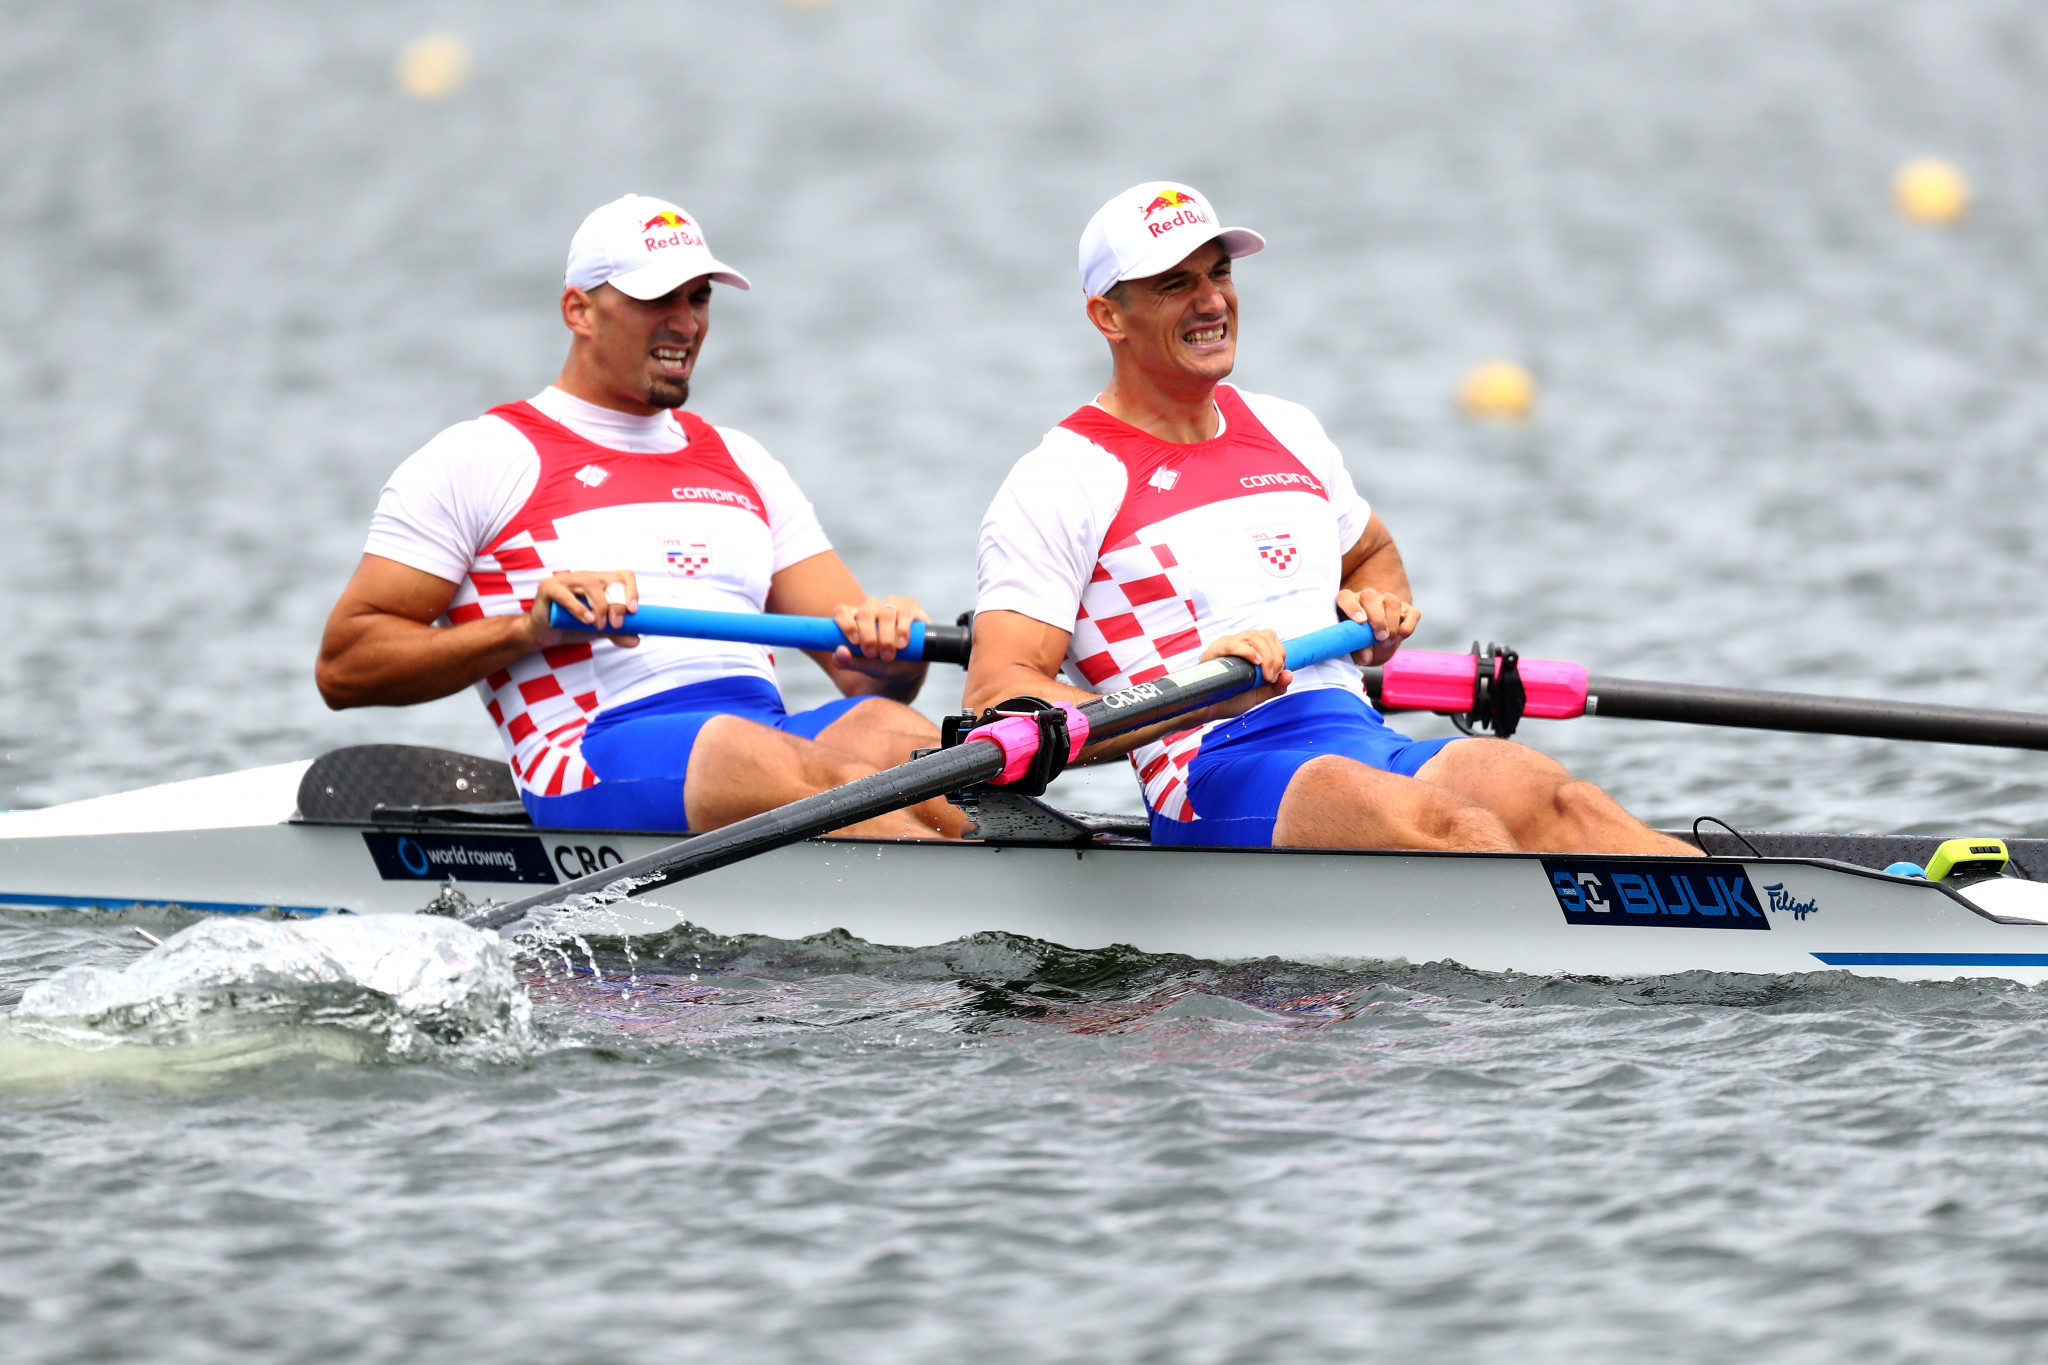 Sinković brothers top men's pairs heat as World Rowing Championships get underway